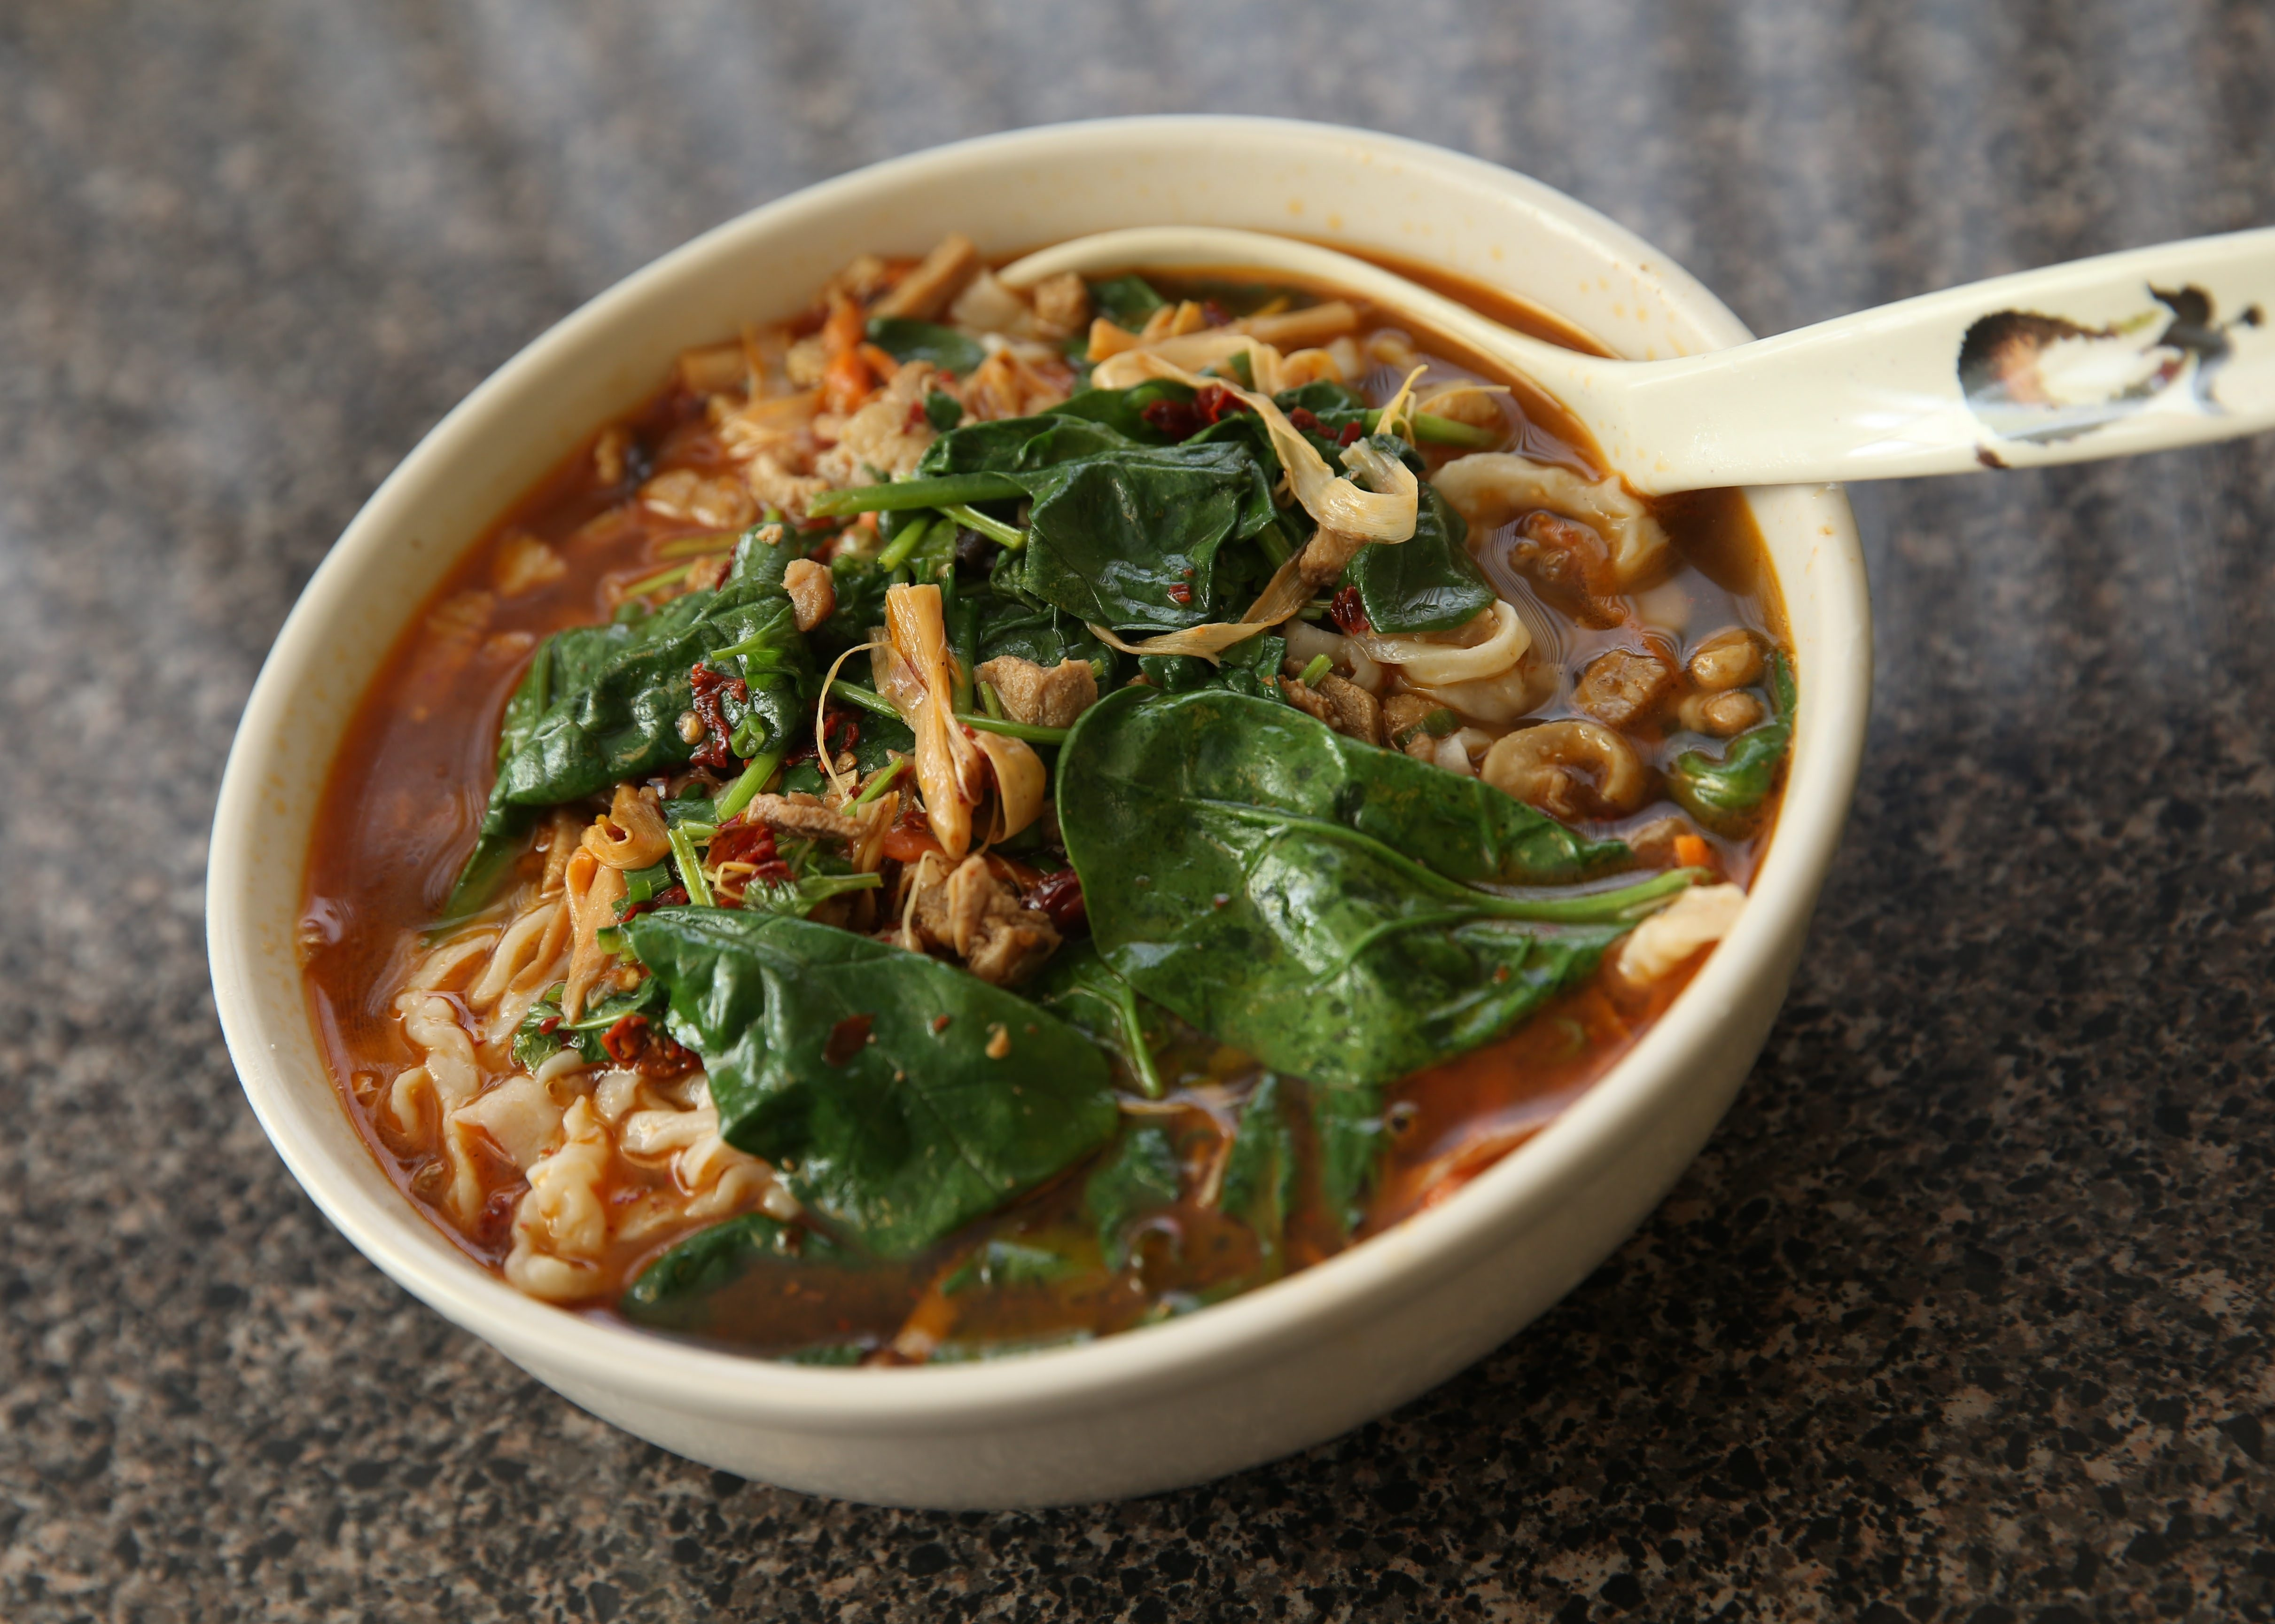 Noodles in a bit of spicy chile-laced broth, tangy with vinegar, and a jumble of vegetables